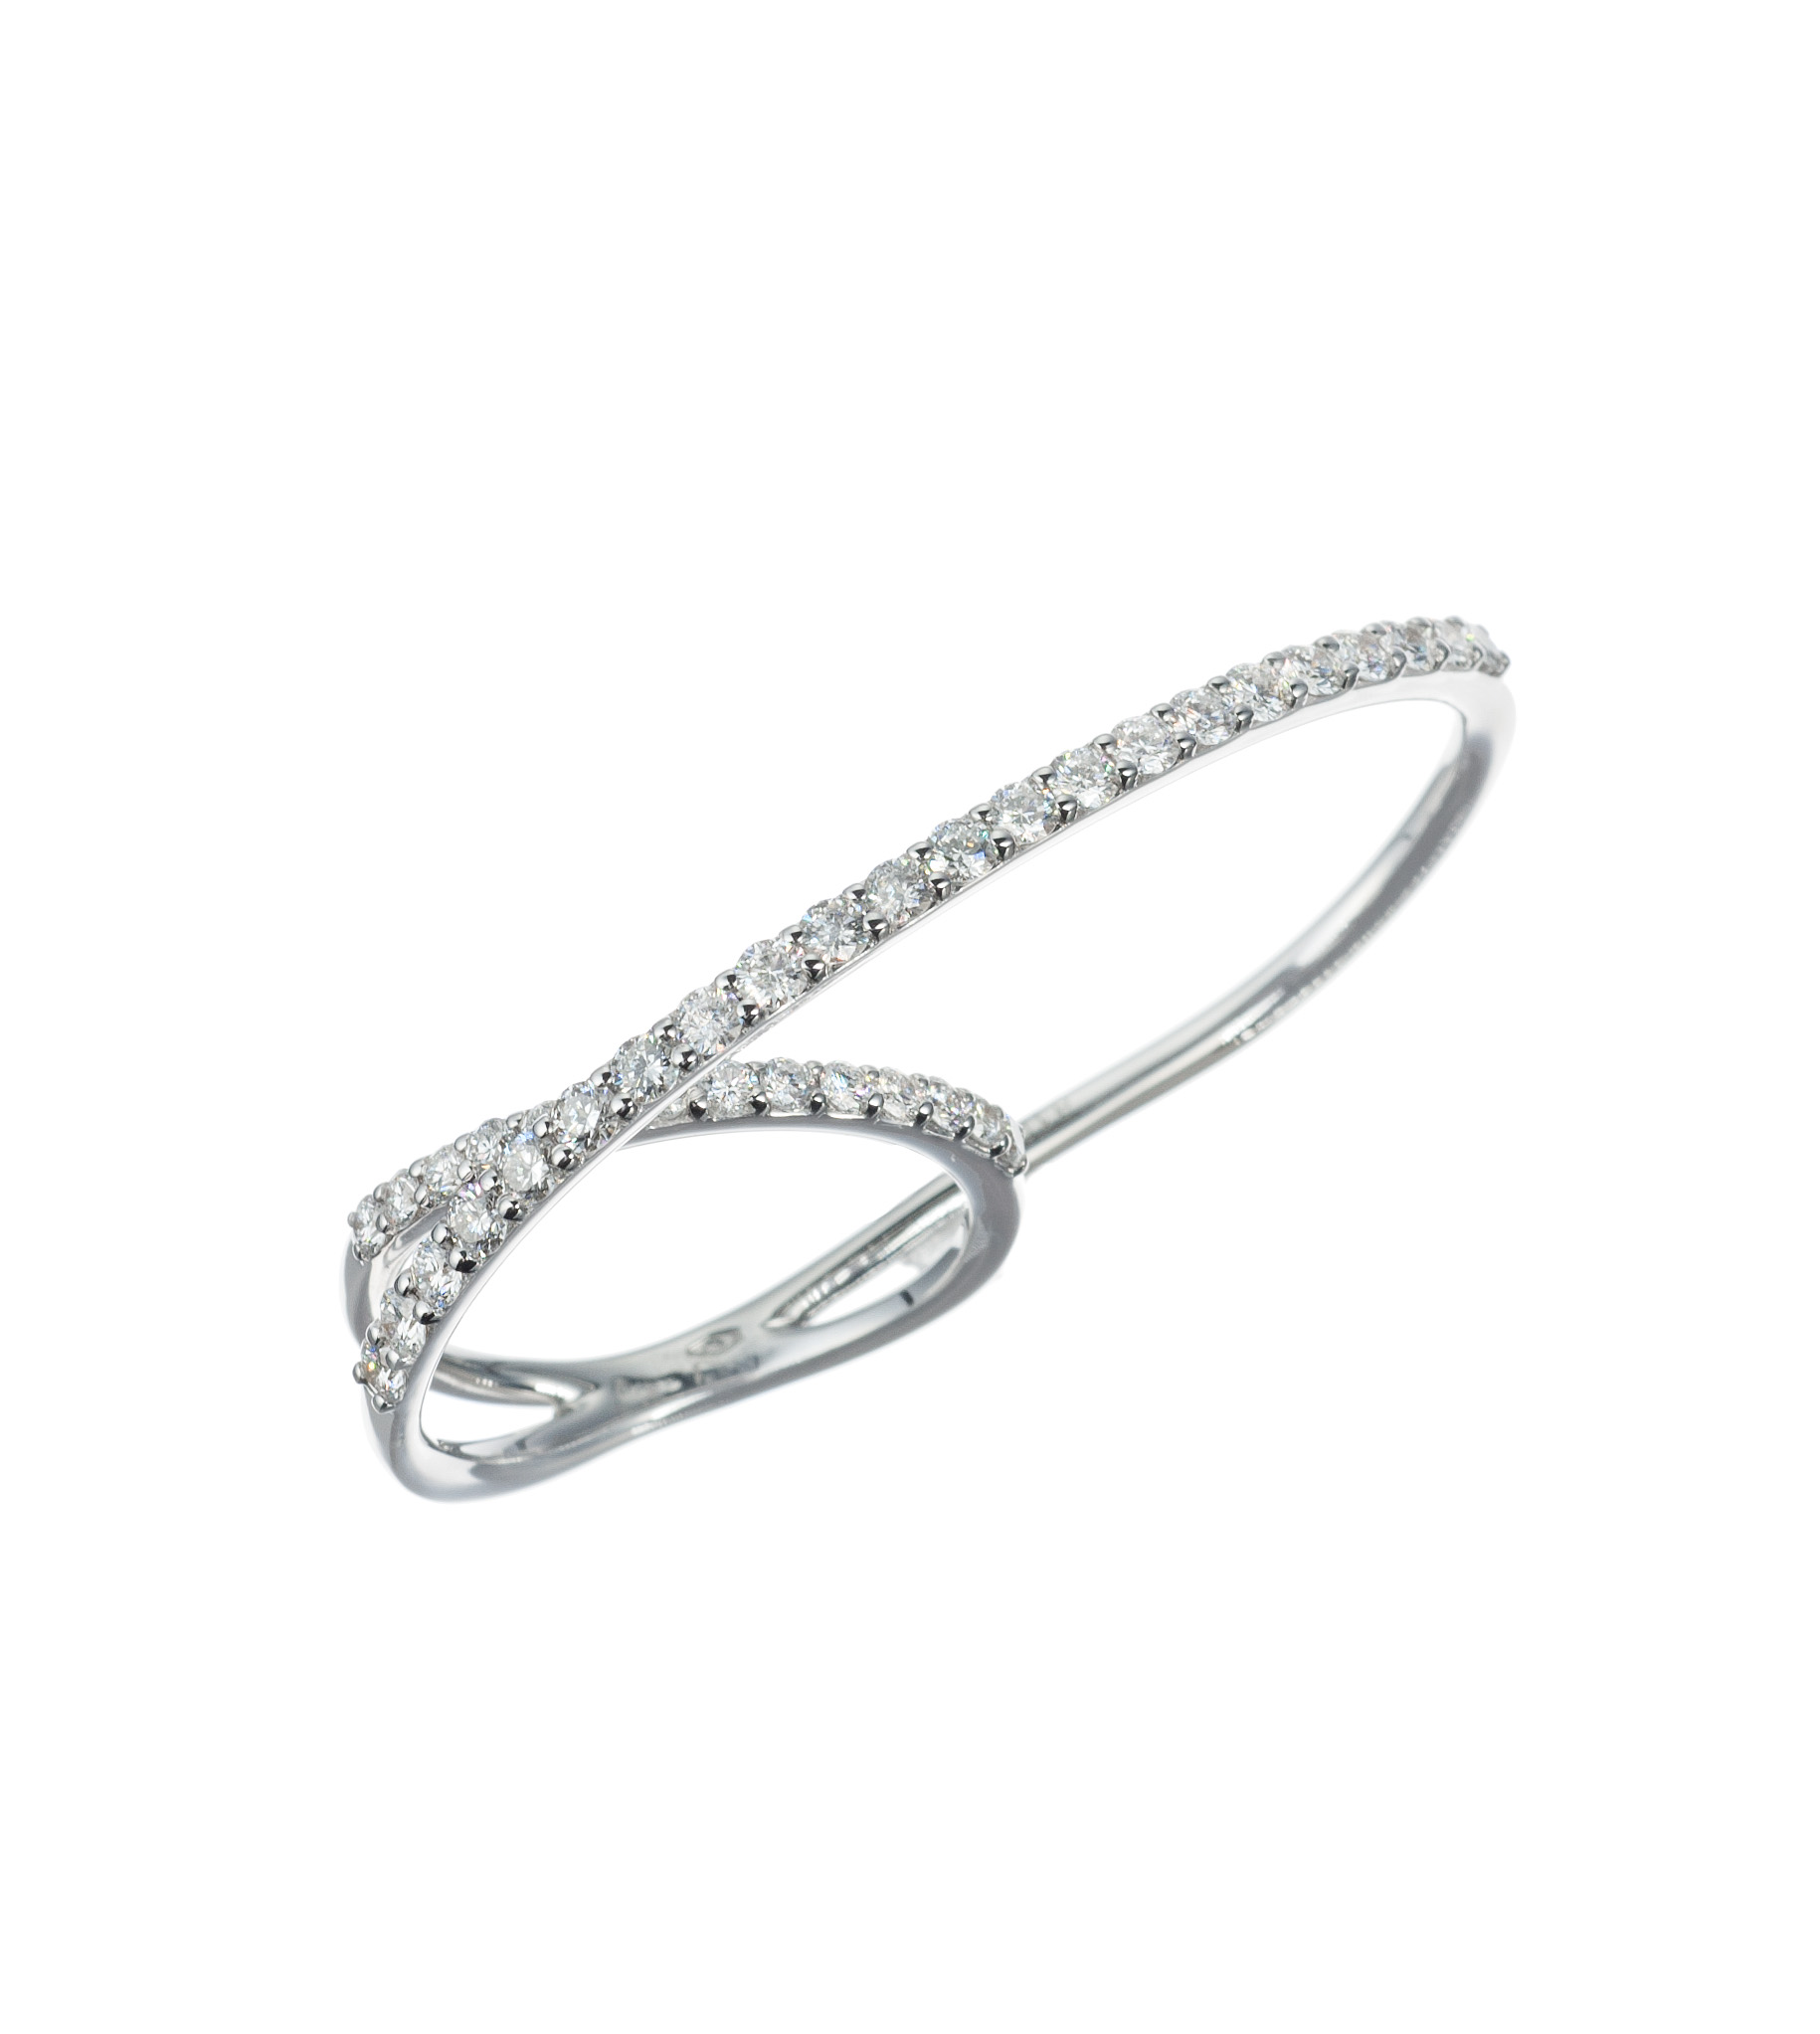 Diamond two-finger ring in white gold